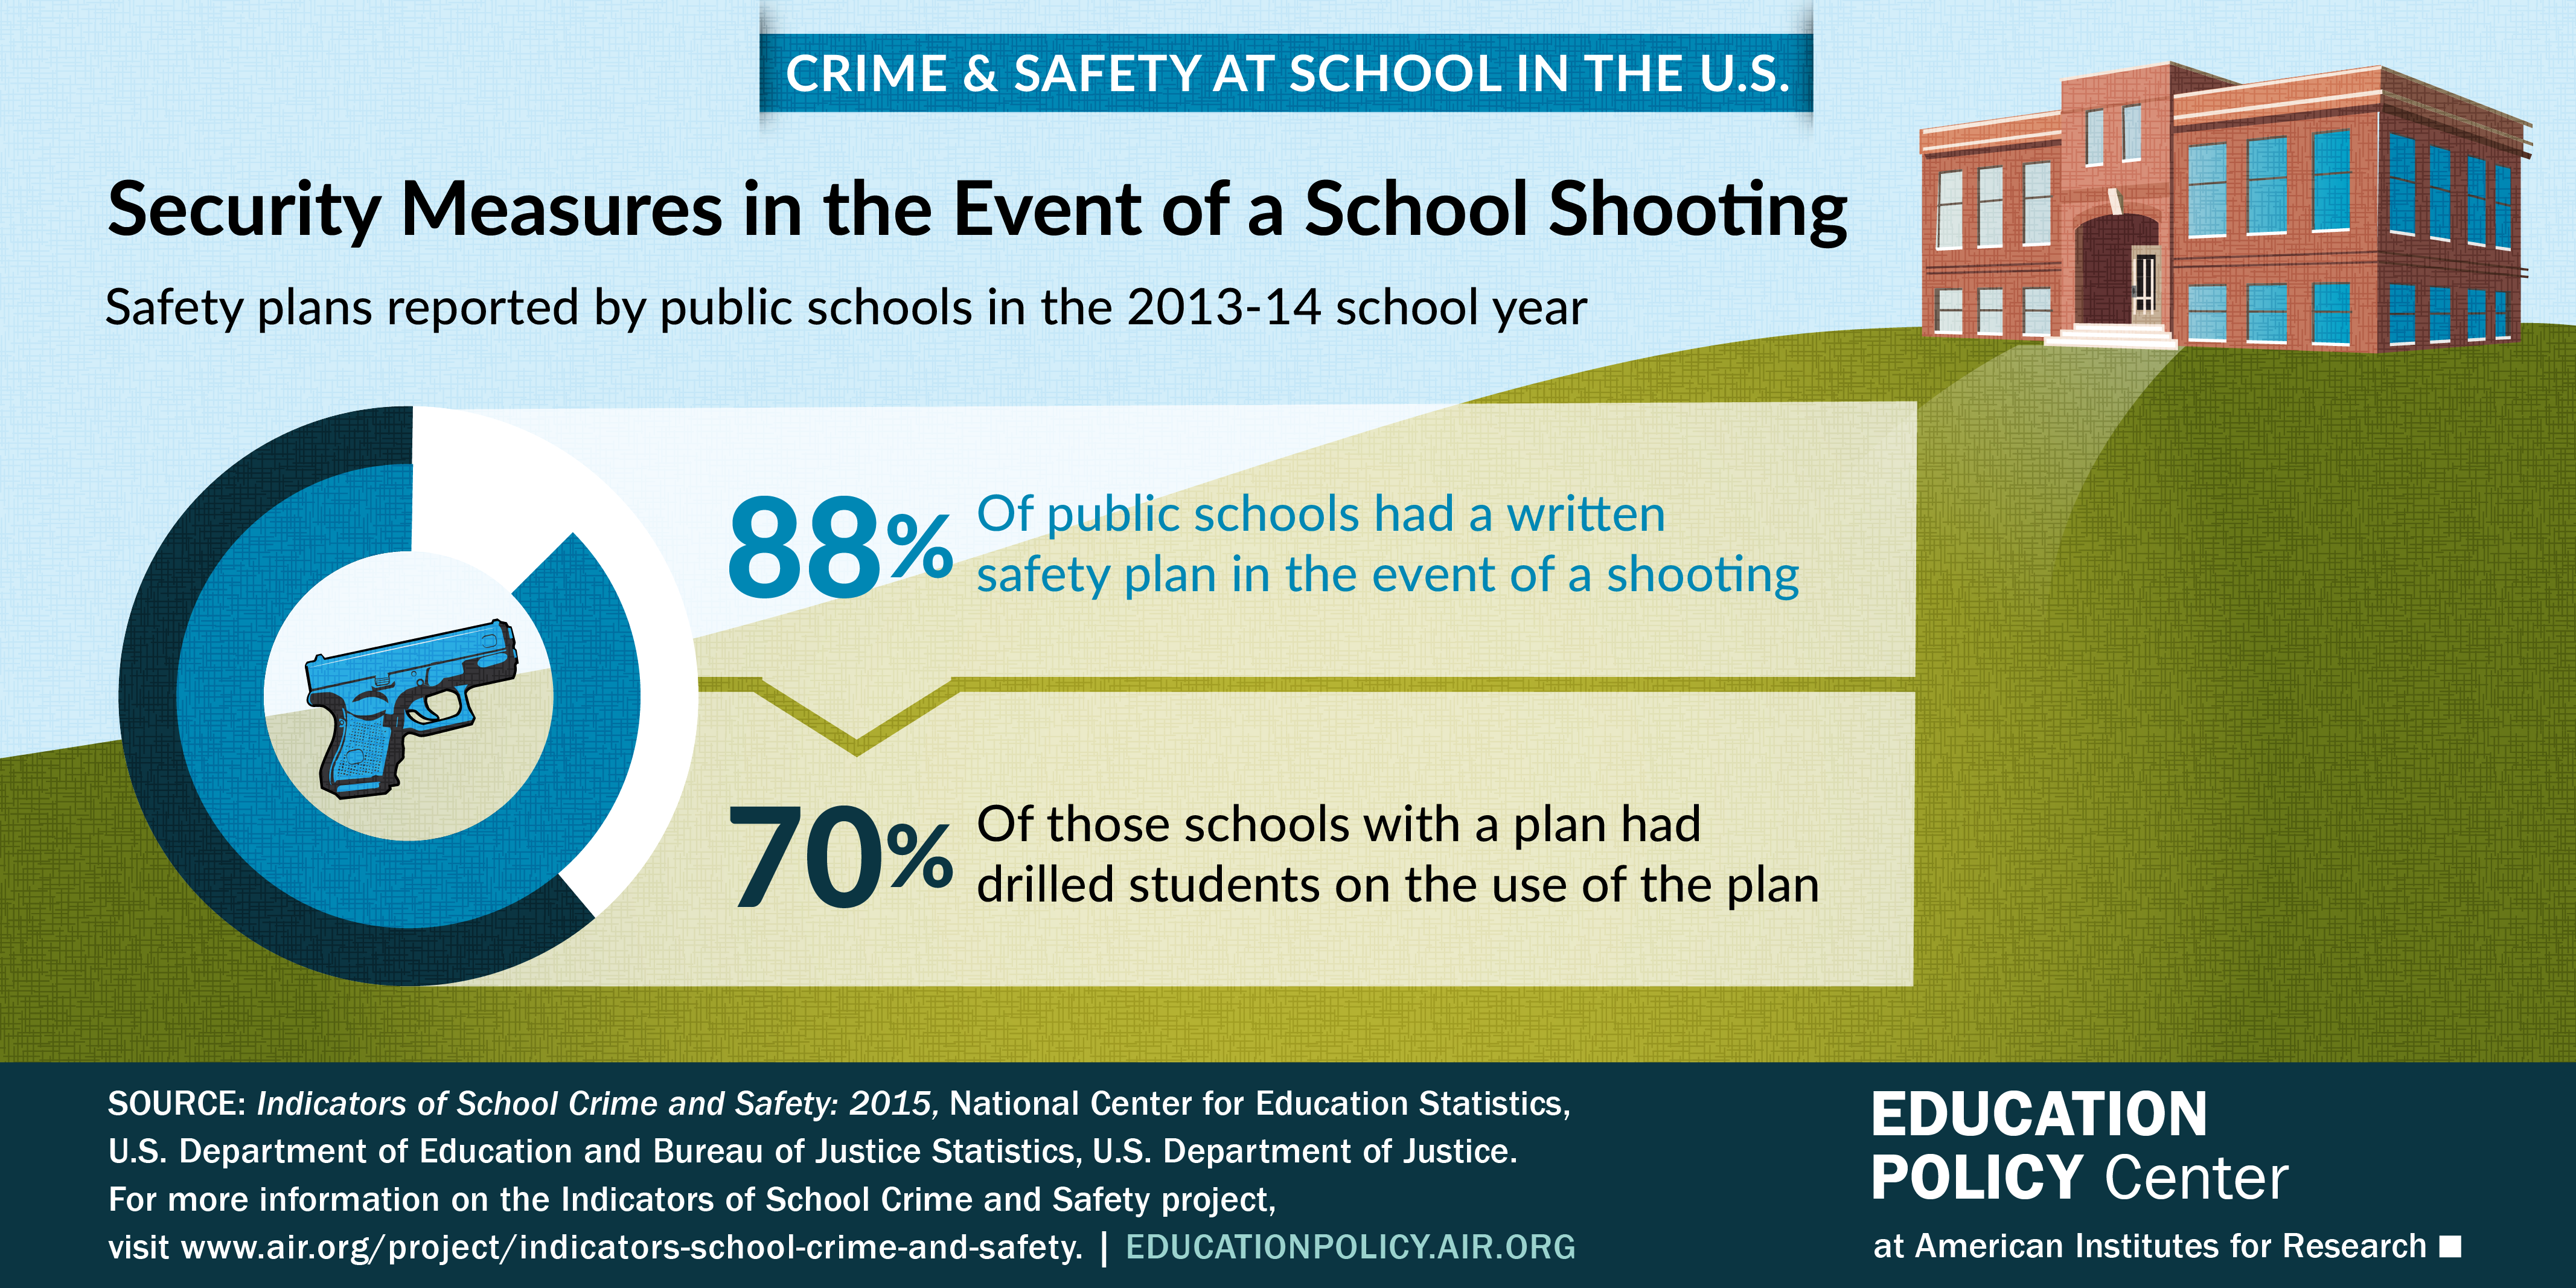 Infographic on security measures in the event of a school shooting reported by public schools in the 2013-14 school year